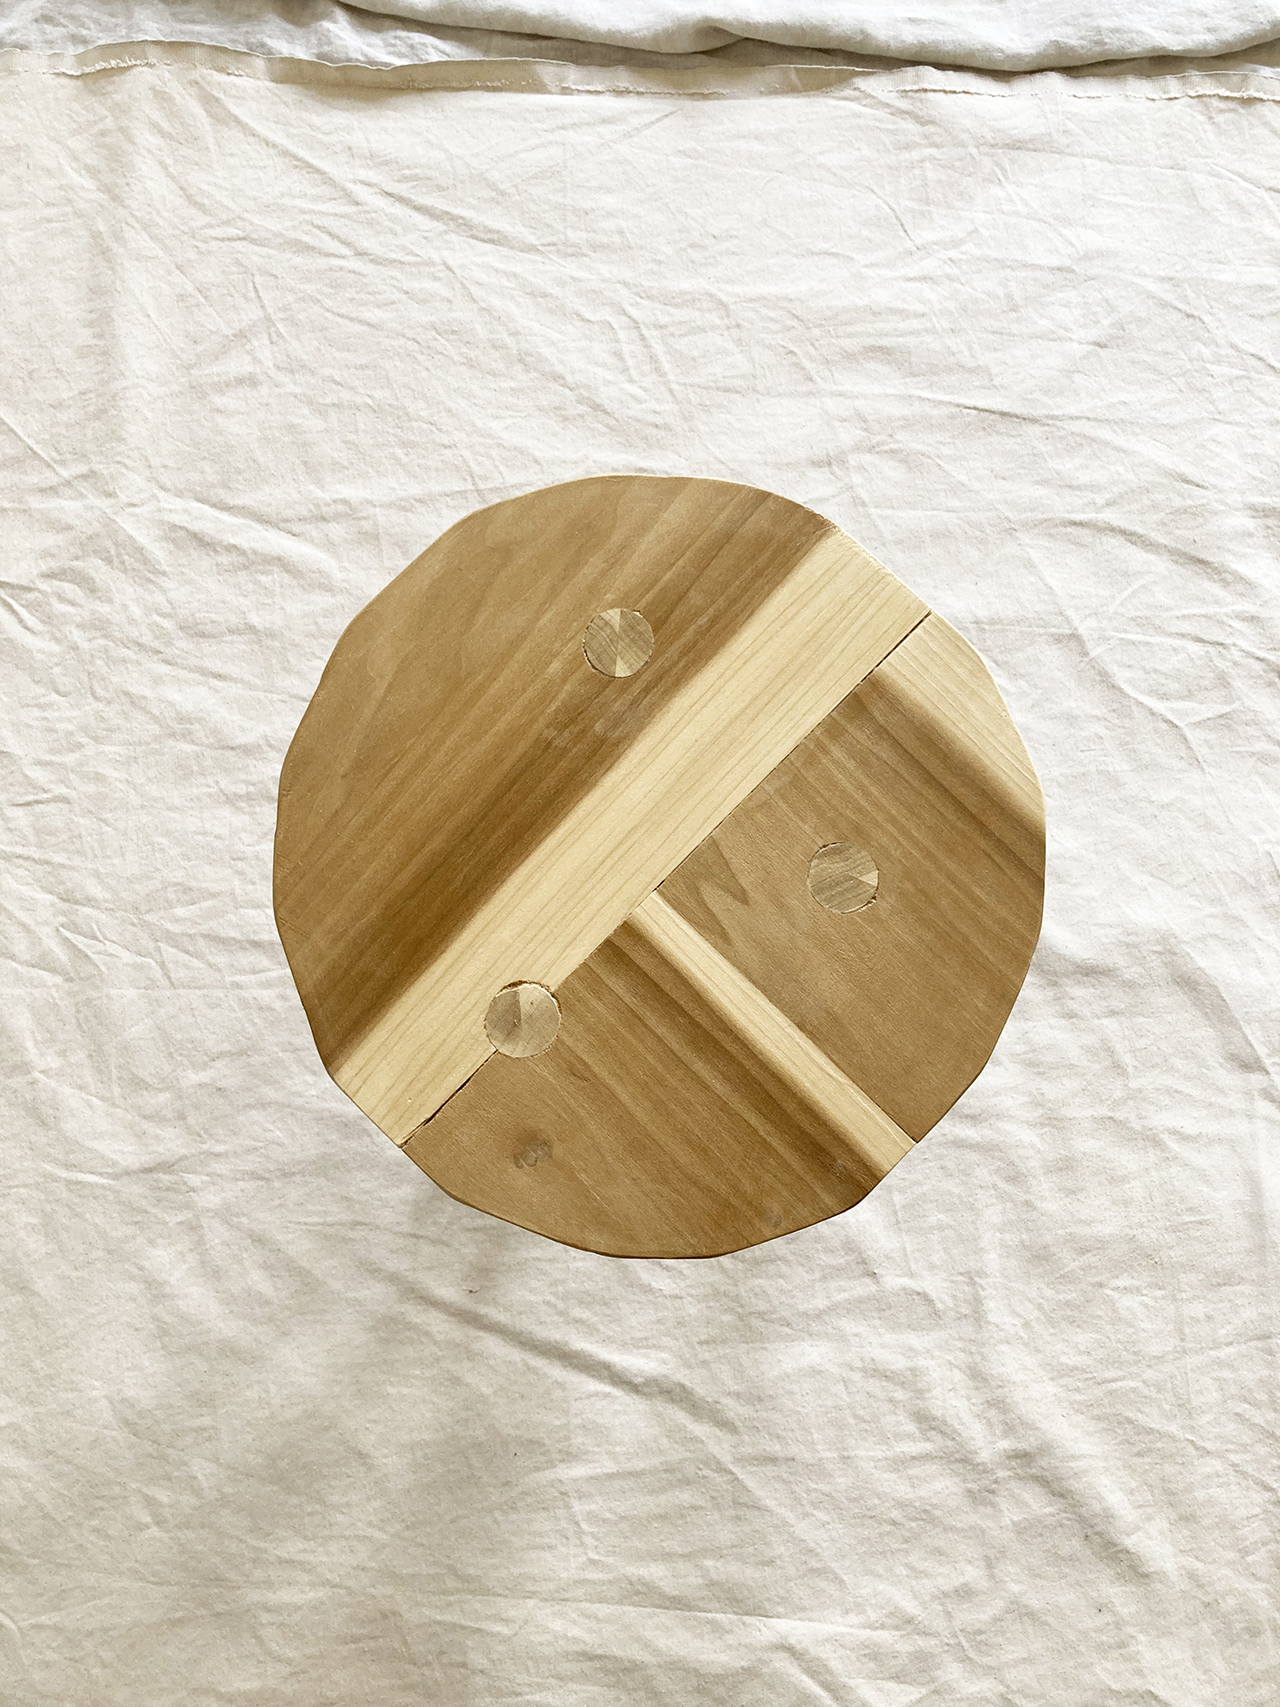 top view of stool